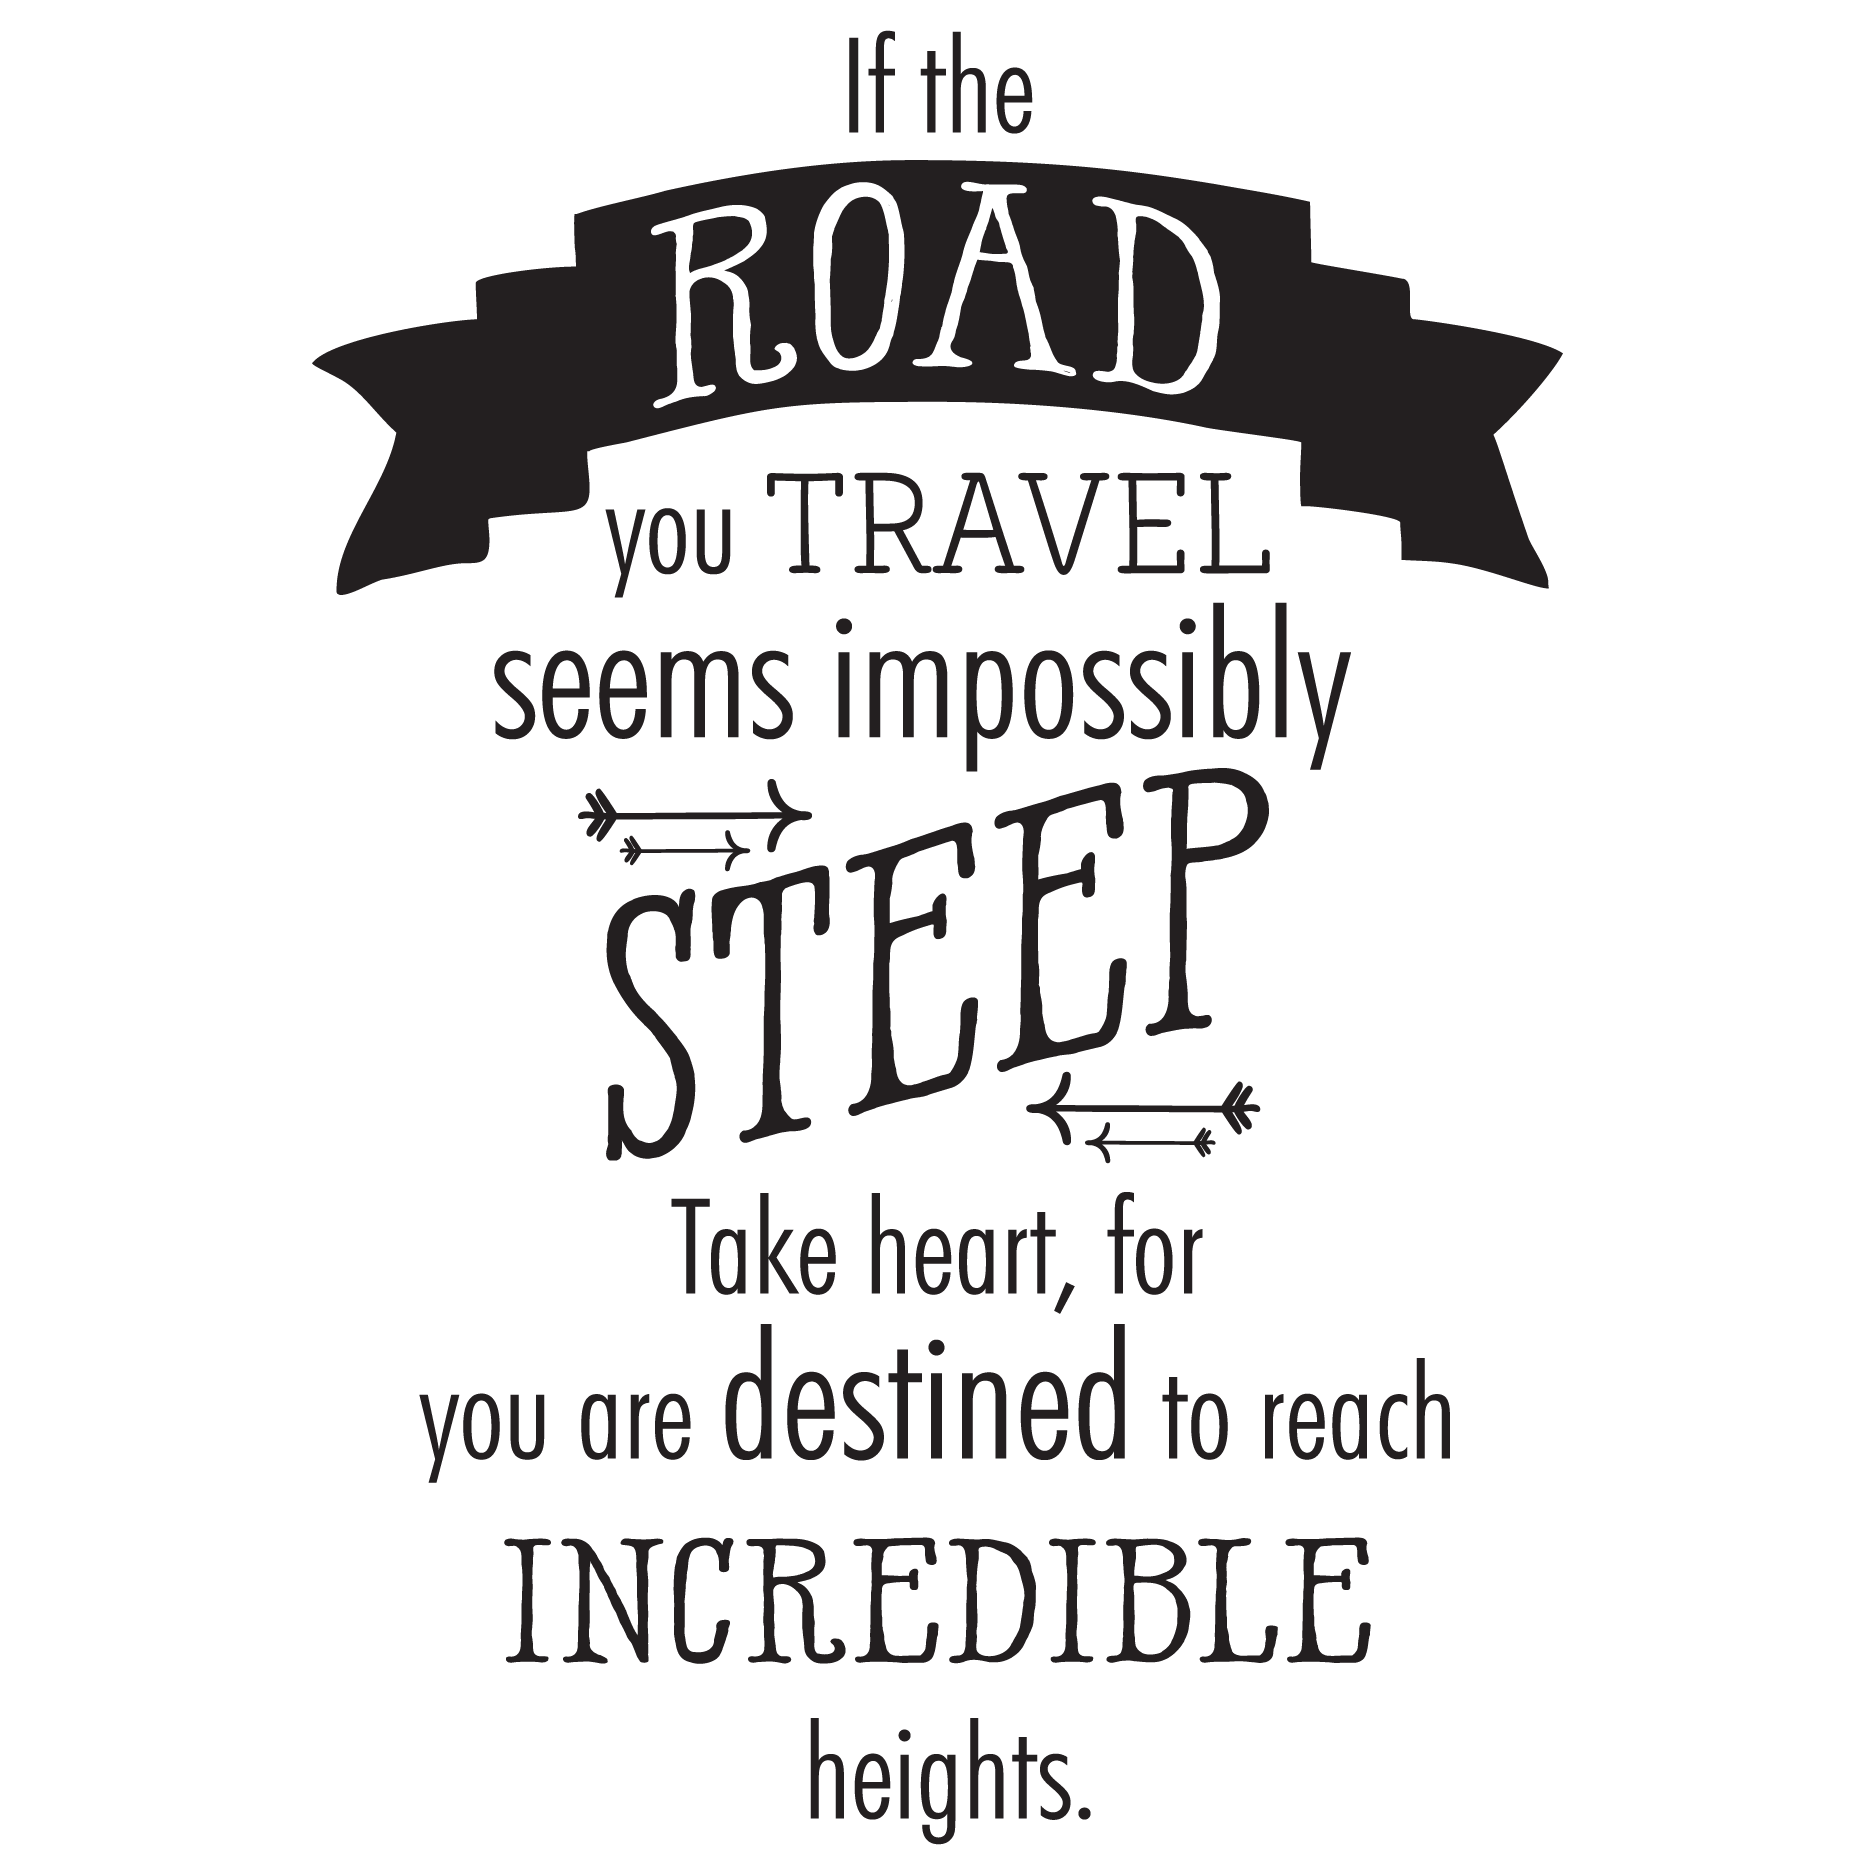 If The Road You Travel Wall Quotes Decal Wallquotes Com